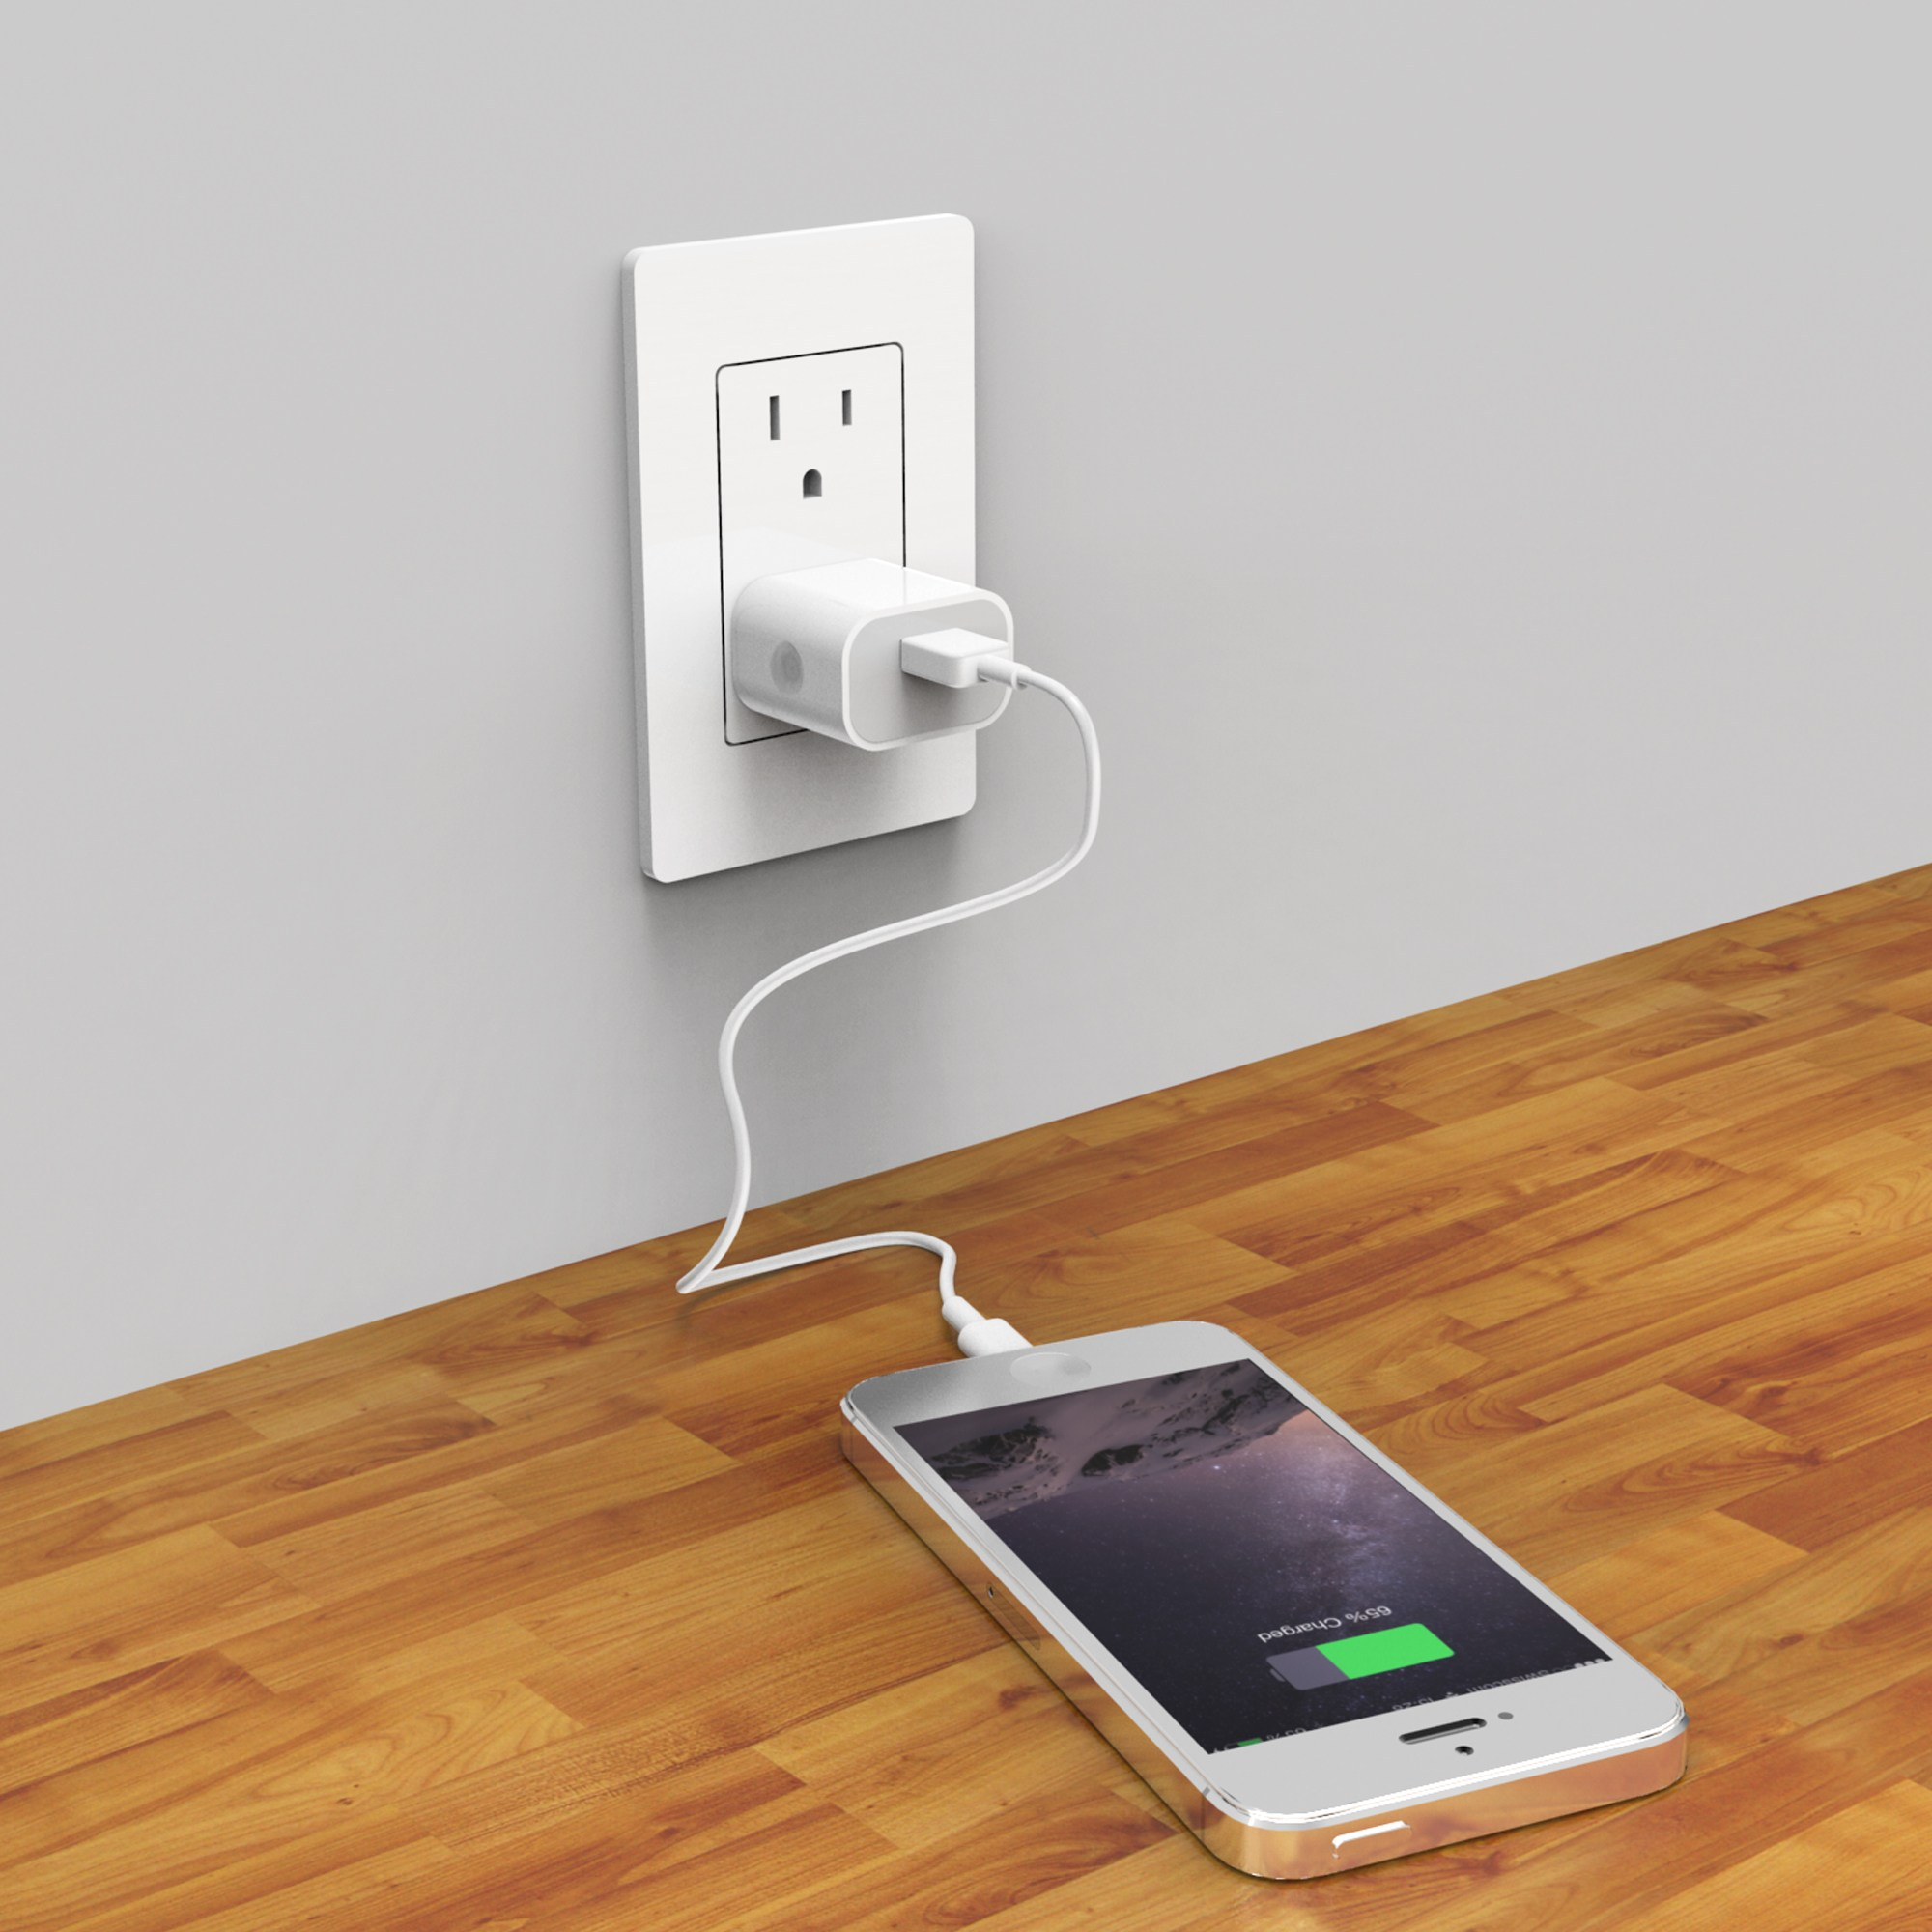 Image-3-iPhone-Charging-via-Wall-Adapter